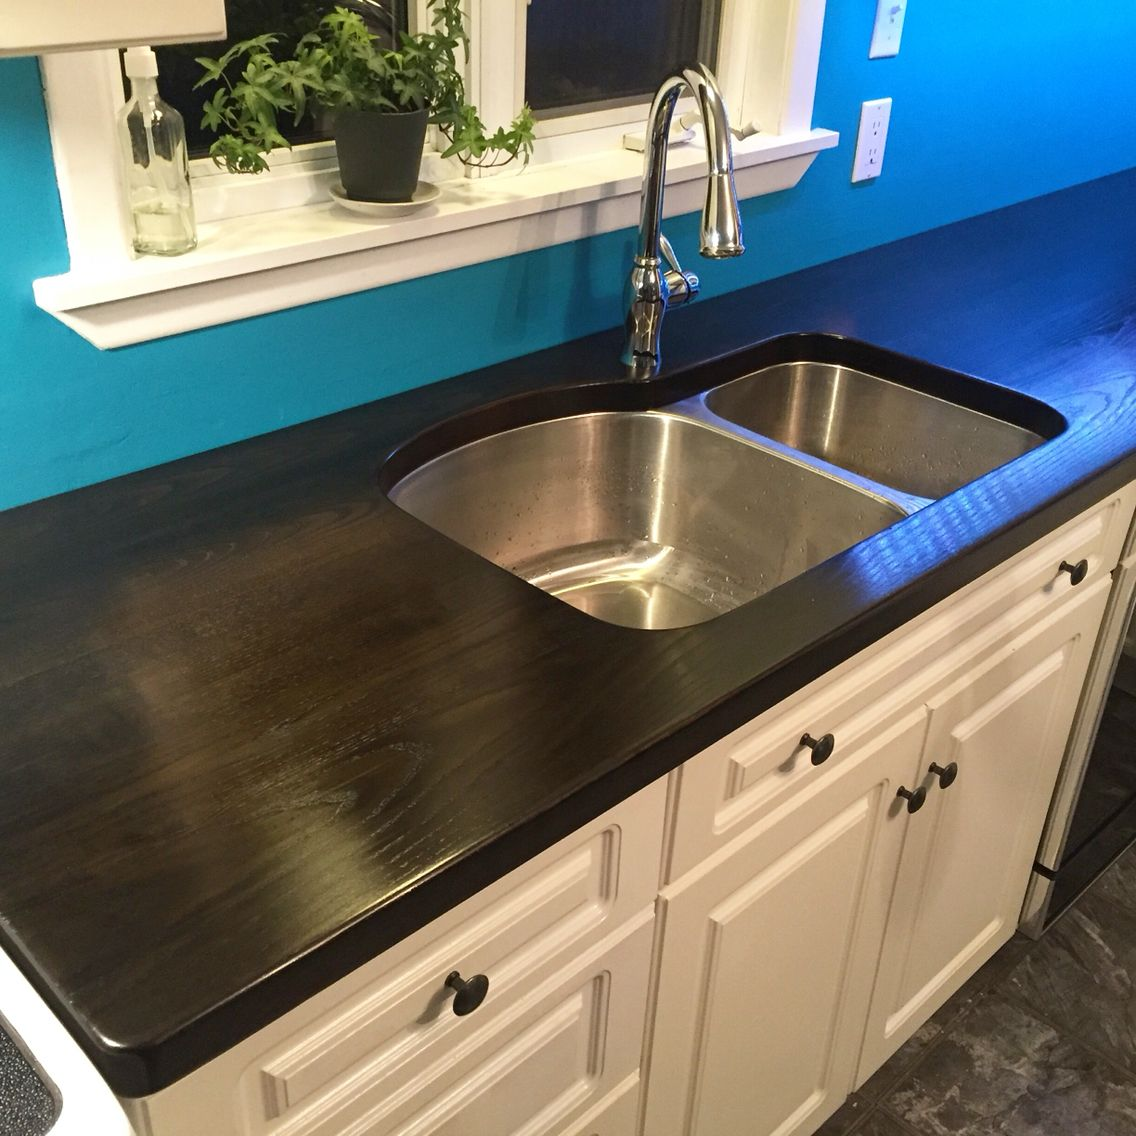 Our Gorgeous New Countertop Dark Stained Ash Wood Finished With Ez Do Wipe On Polyurethane This Ain T No Butcher Block